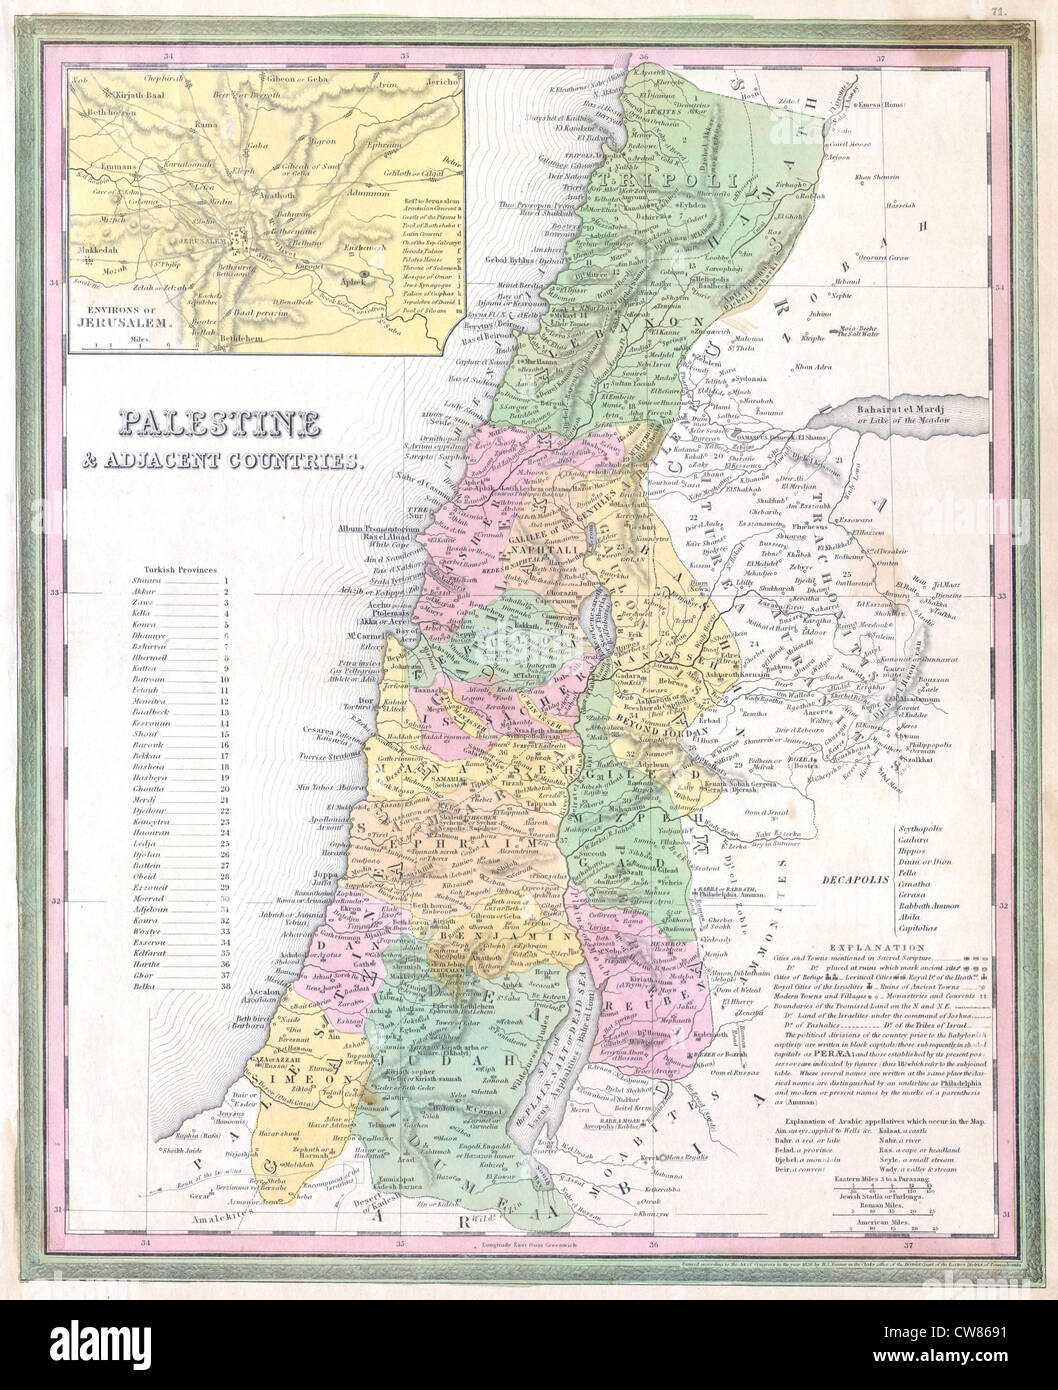 1836 Tanner Map of Palestine - Israel - Holy Land - Stock Image